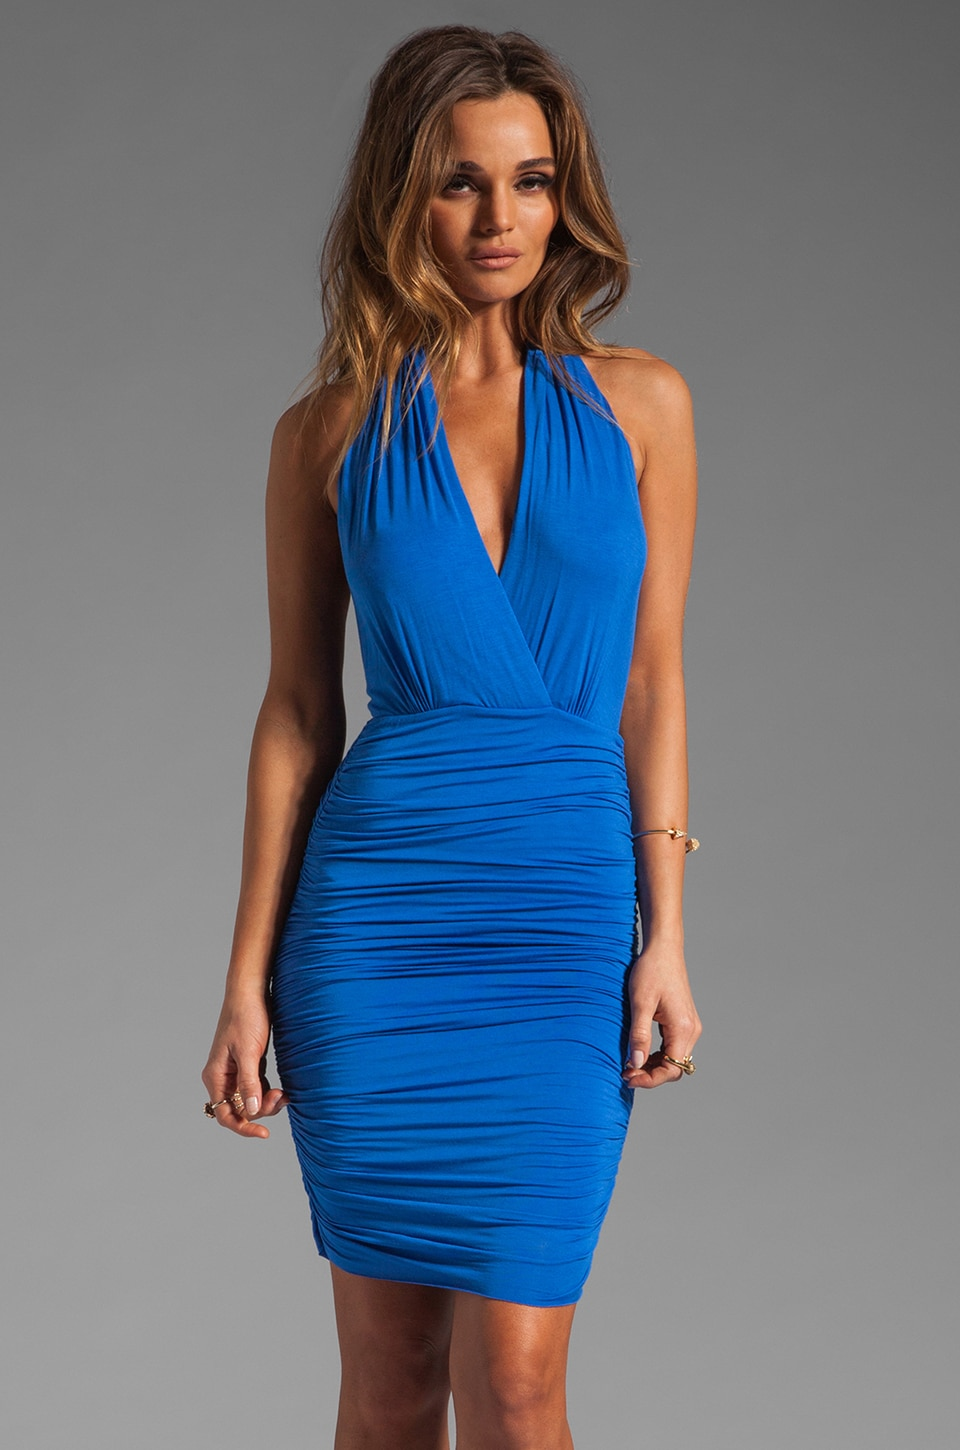 Bailey 44 Go For Gold Dress in Blue